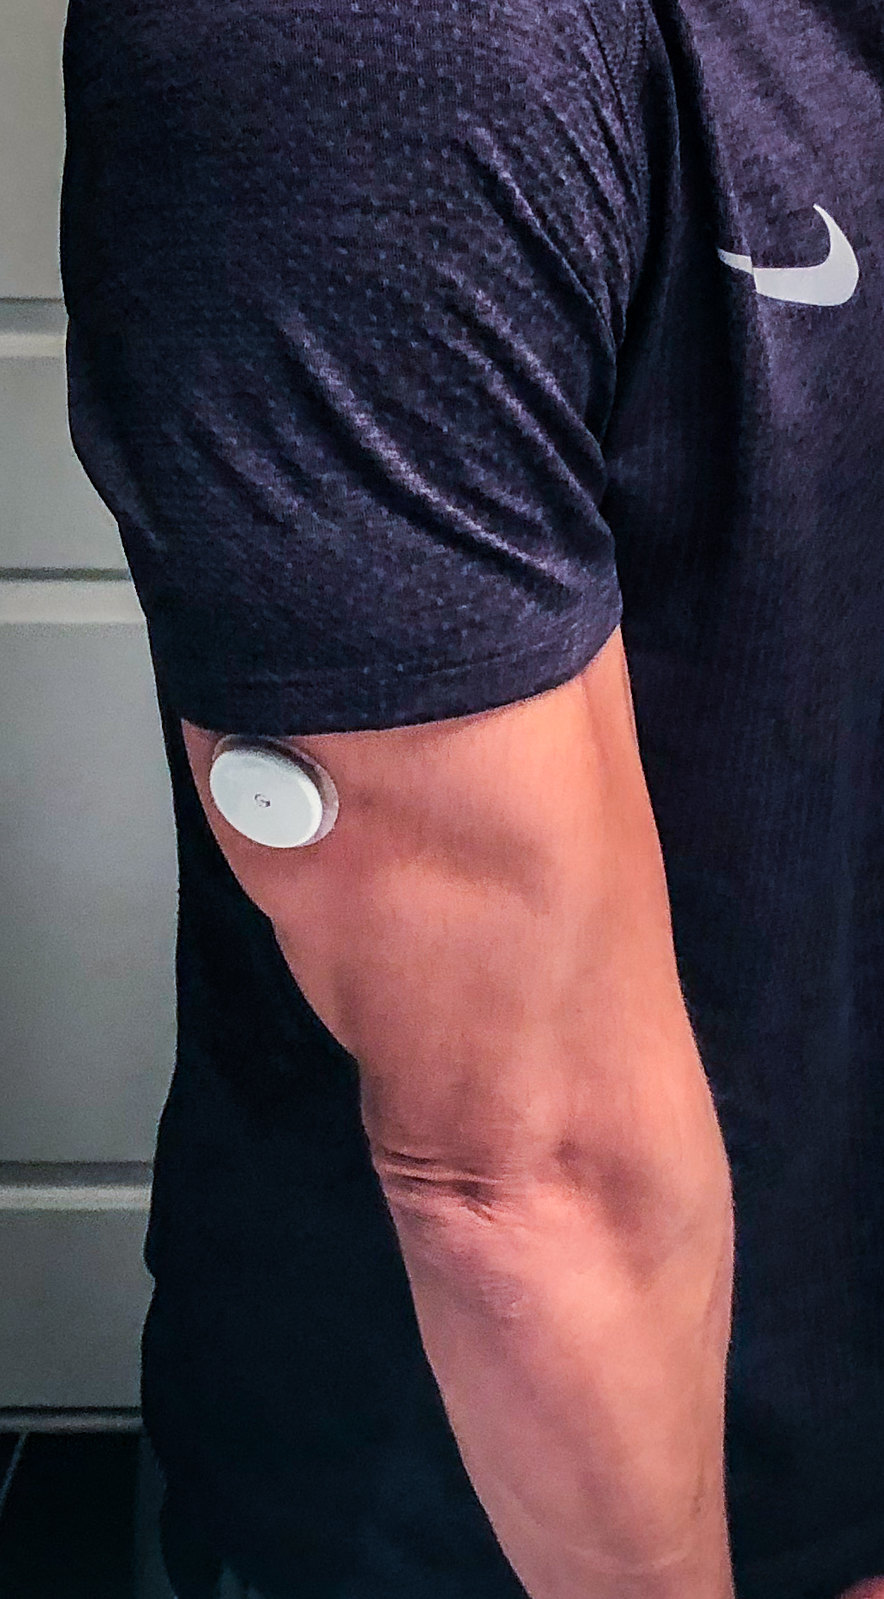 2018.09.11 Continuous Glucose Monitoring, Washington, DC USA 1285